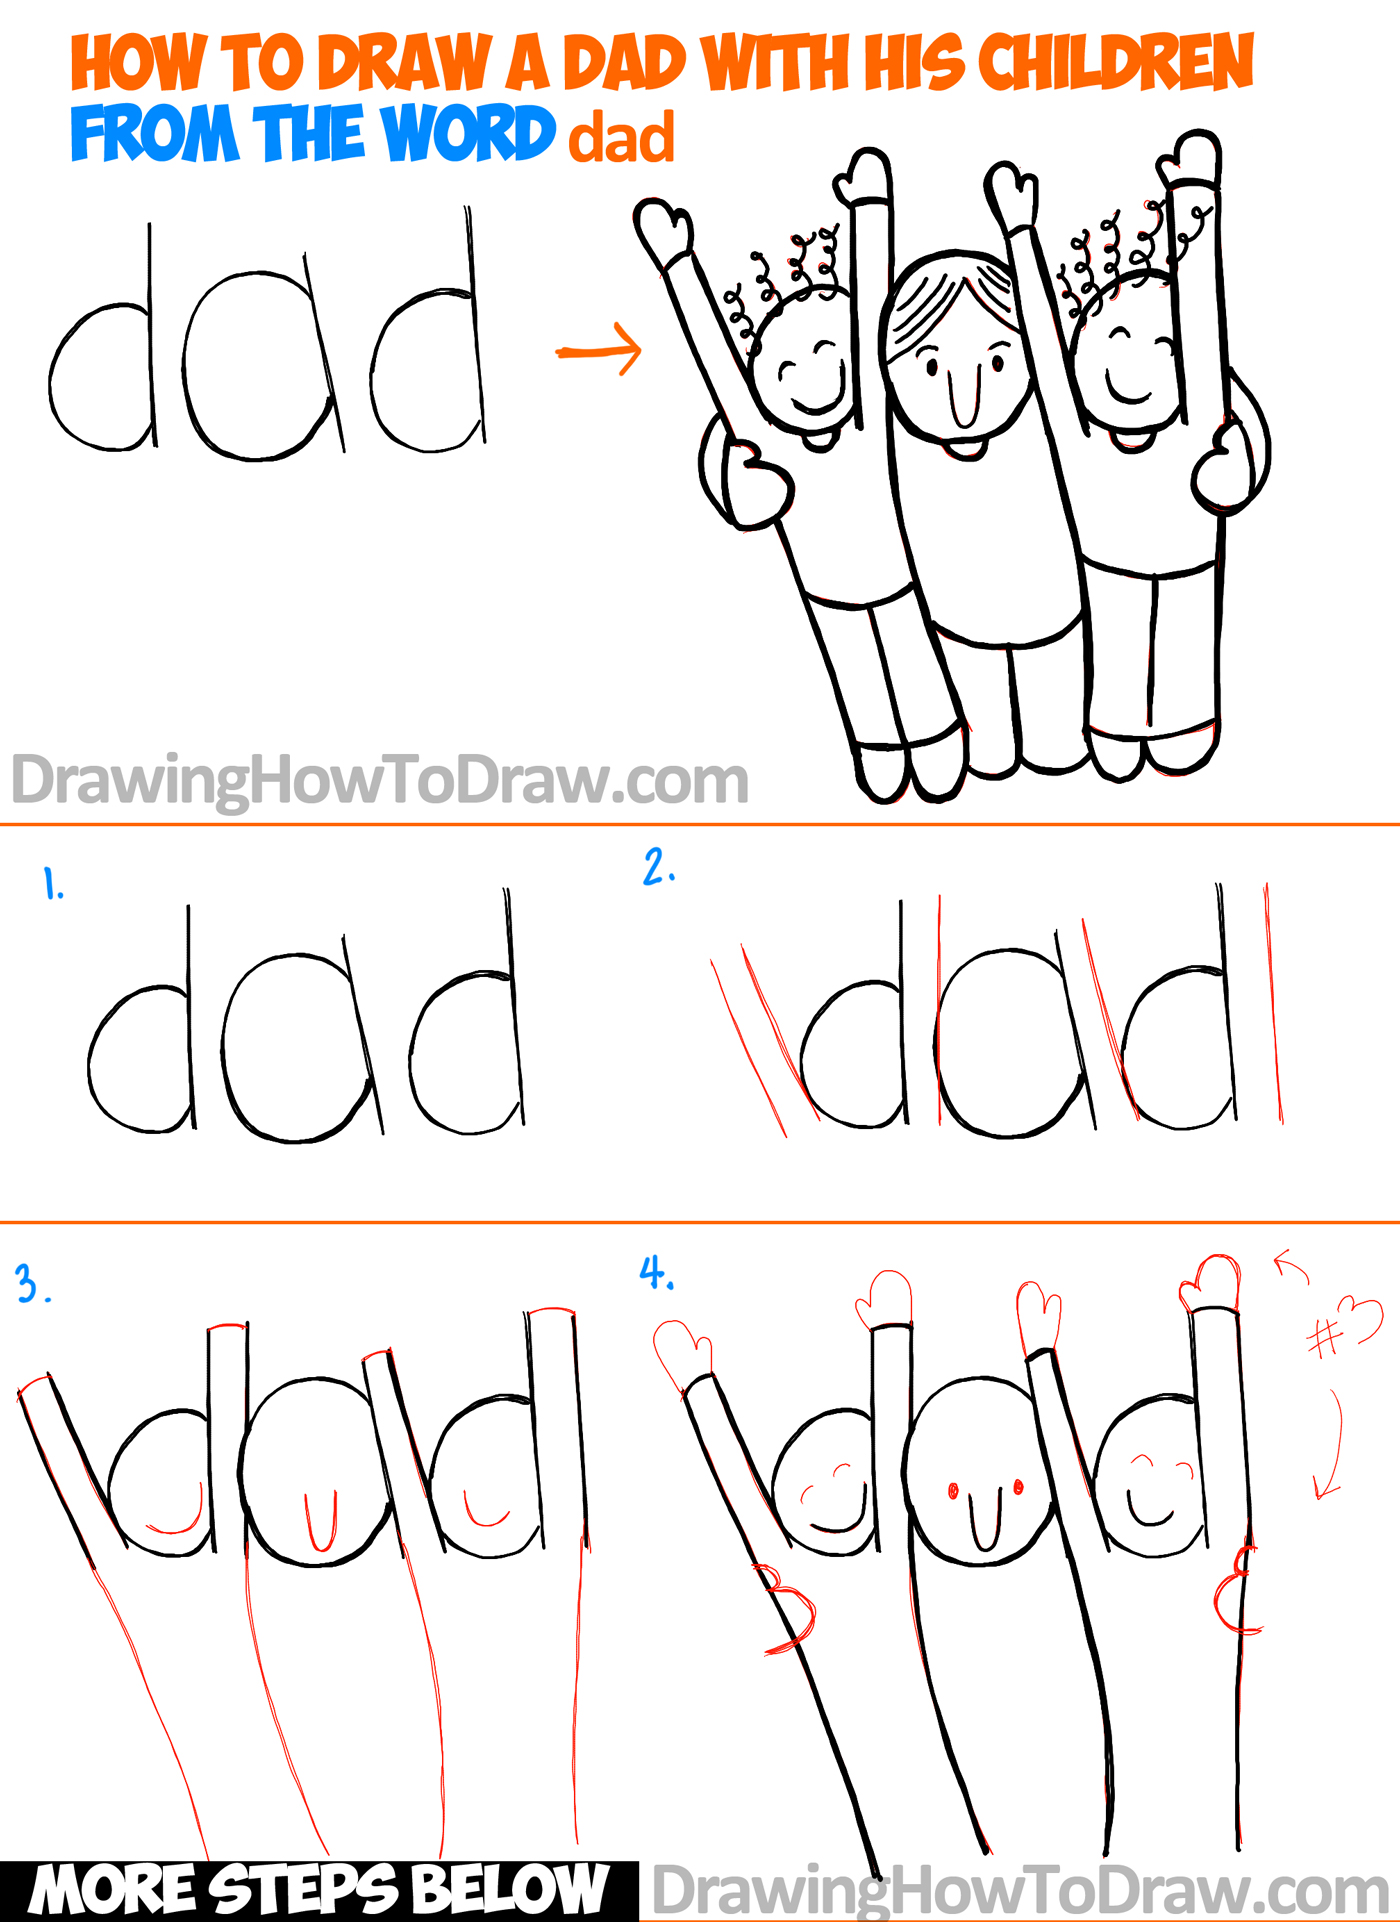 how to make a diagram in word 2002 saturn sc2 radio wiring draw cartoon dad and children from the